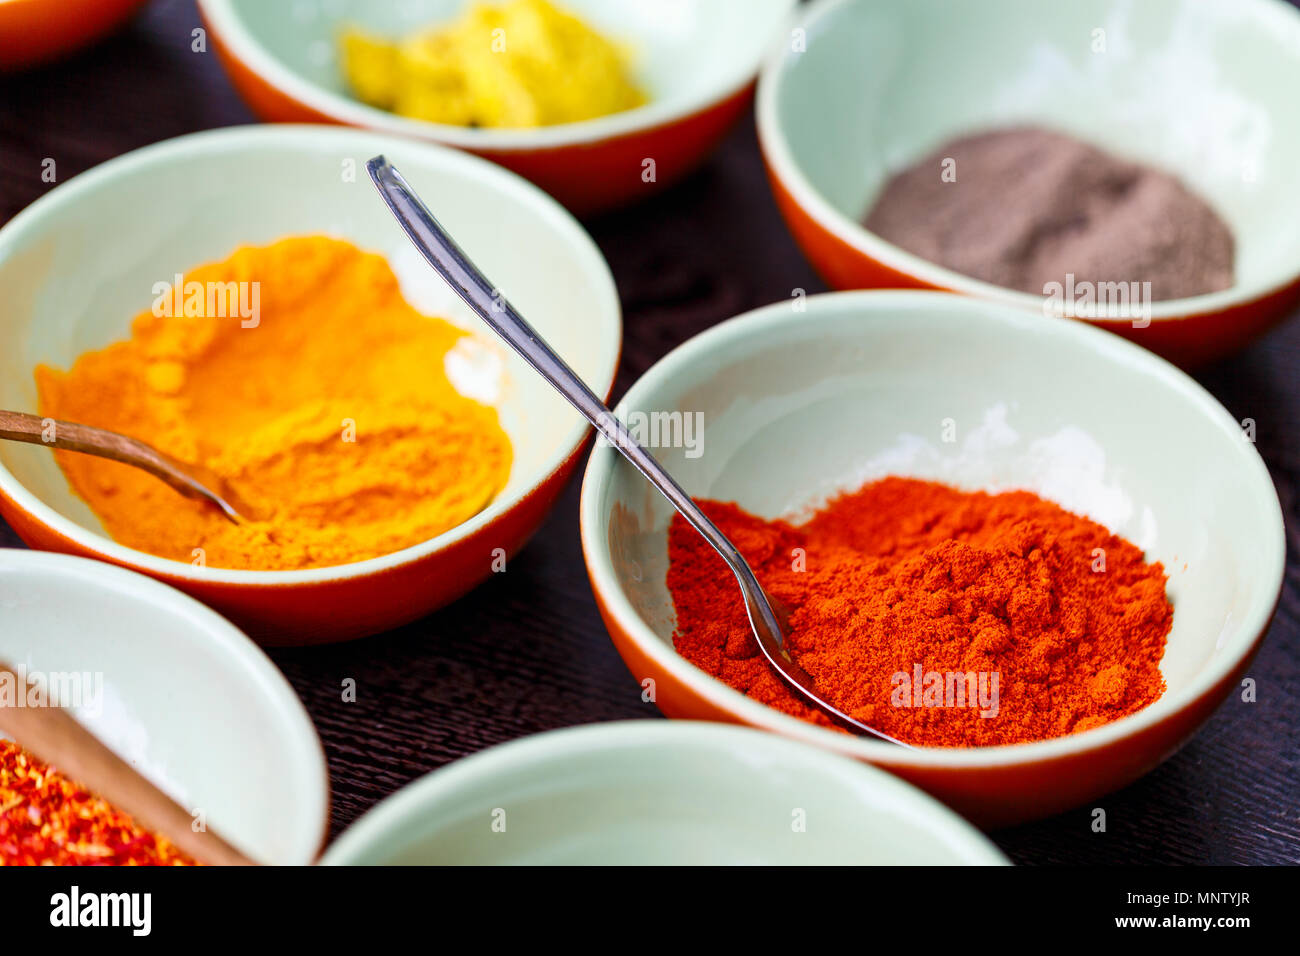 Spices cooking ingredients for making curry - Stock Image